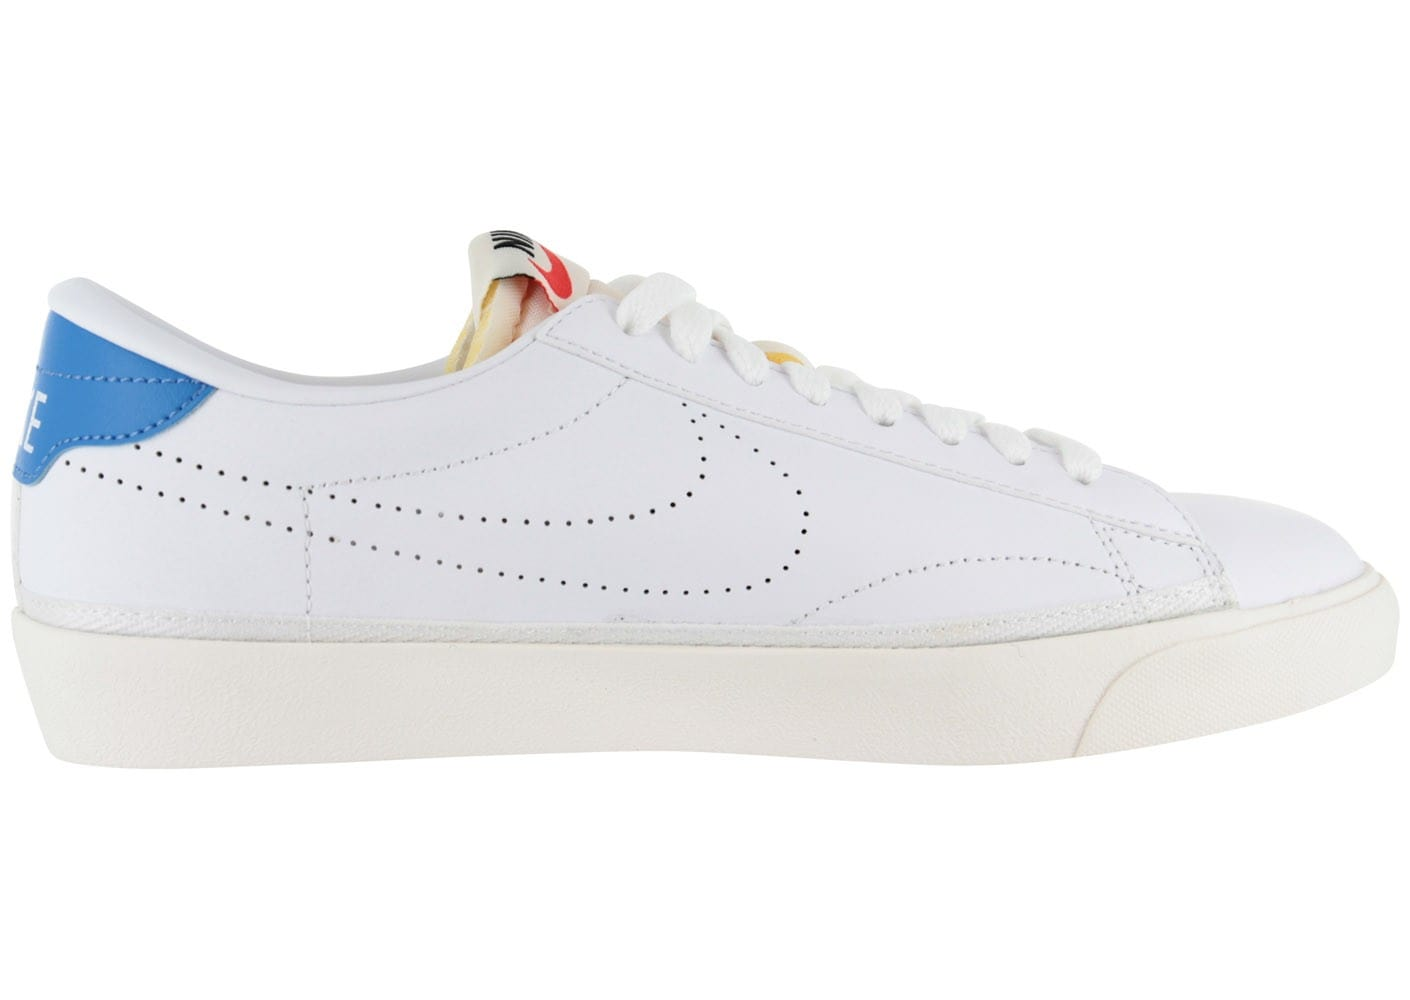 Nike Baskets Tennis Classic Blanche Chaussures Baskets Nike Homme Chausport a33acb